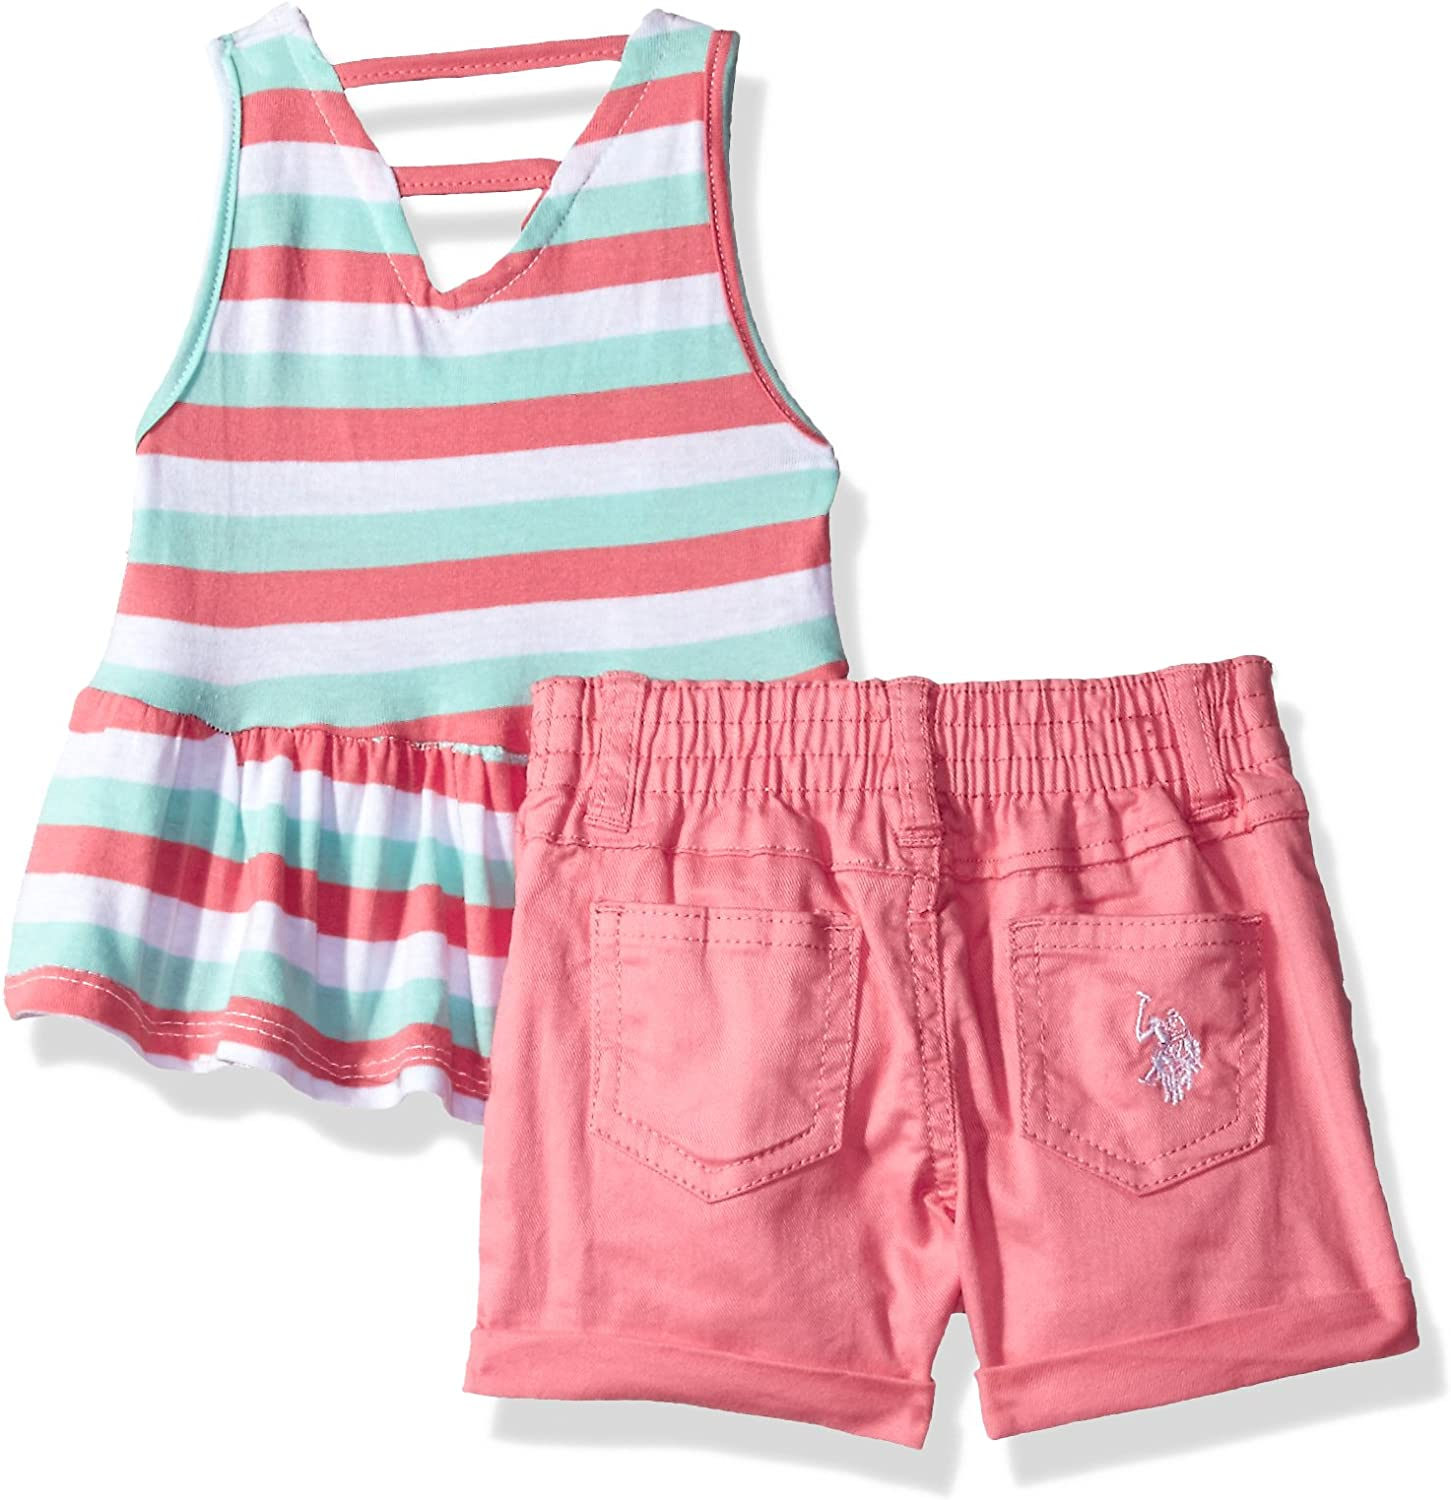 U.S White Polo Assn 10 Girls Big 2 Piece Tunic and Pull-On Short Set Jersey Tank